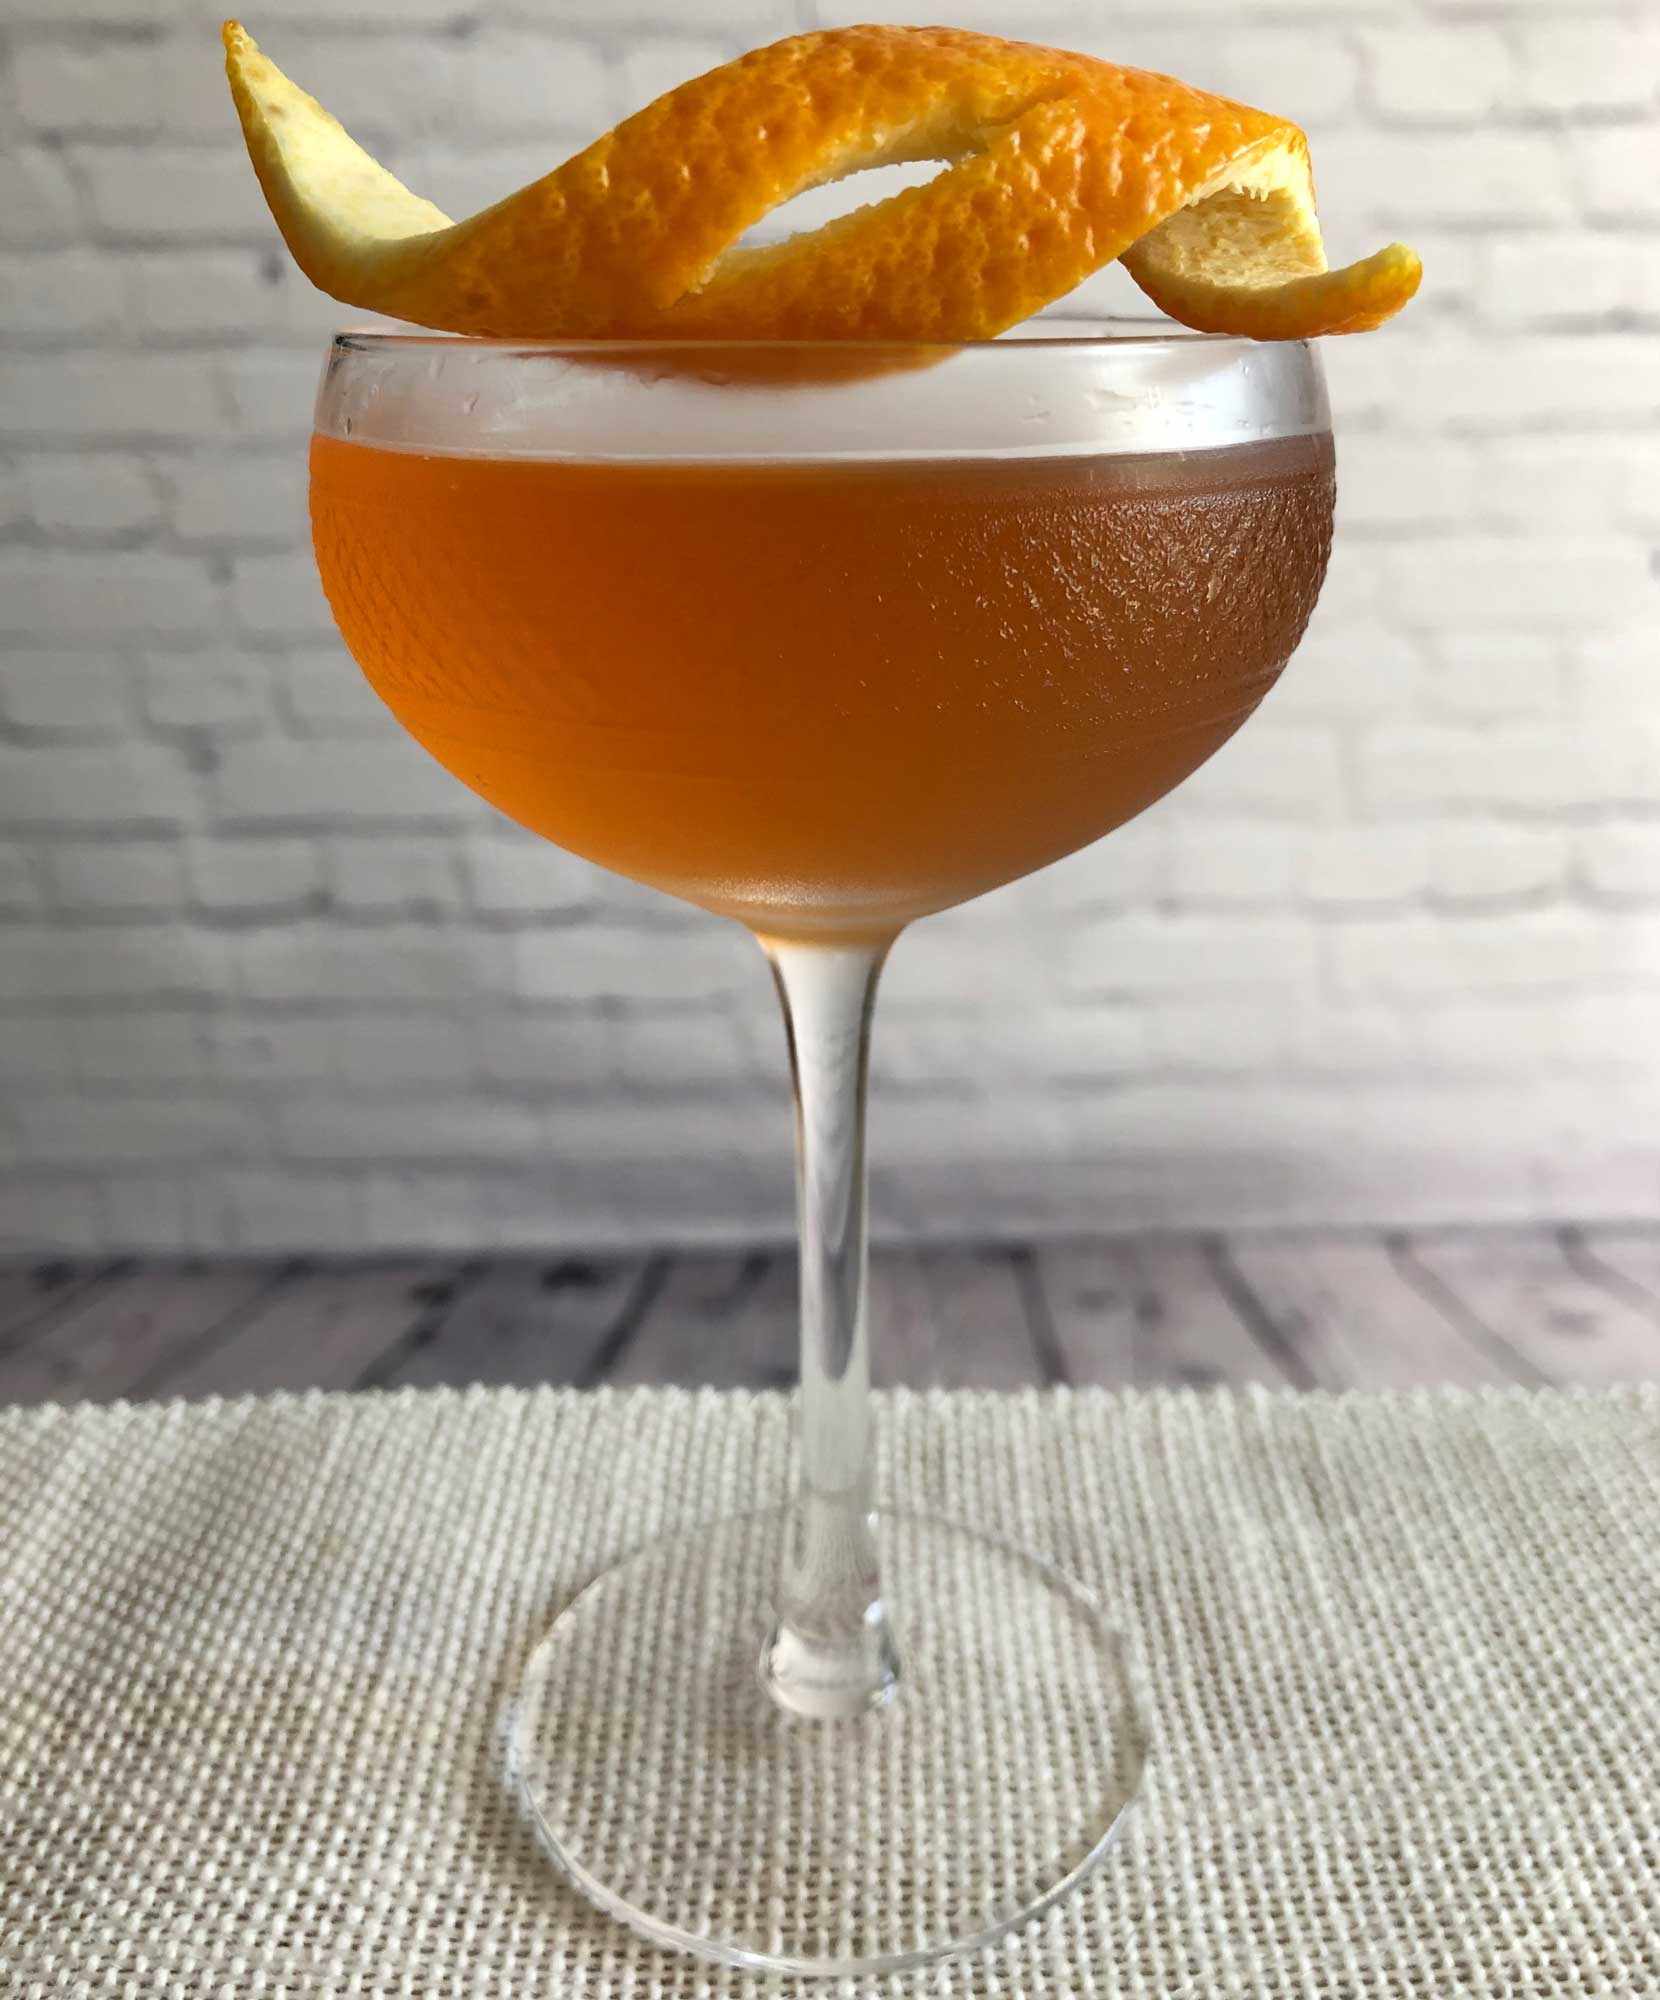 An example of the Boomerang Cocktail, the mixed drink (cocktail), by Savoy Cocktail Book, featuring Kronan Swedish Punsch, rye whiskey, Dolin Dry Vermouth de Chambéry, lemon juice, Angostura bitters, and orange bitters; photo by Lee Edwards